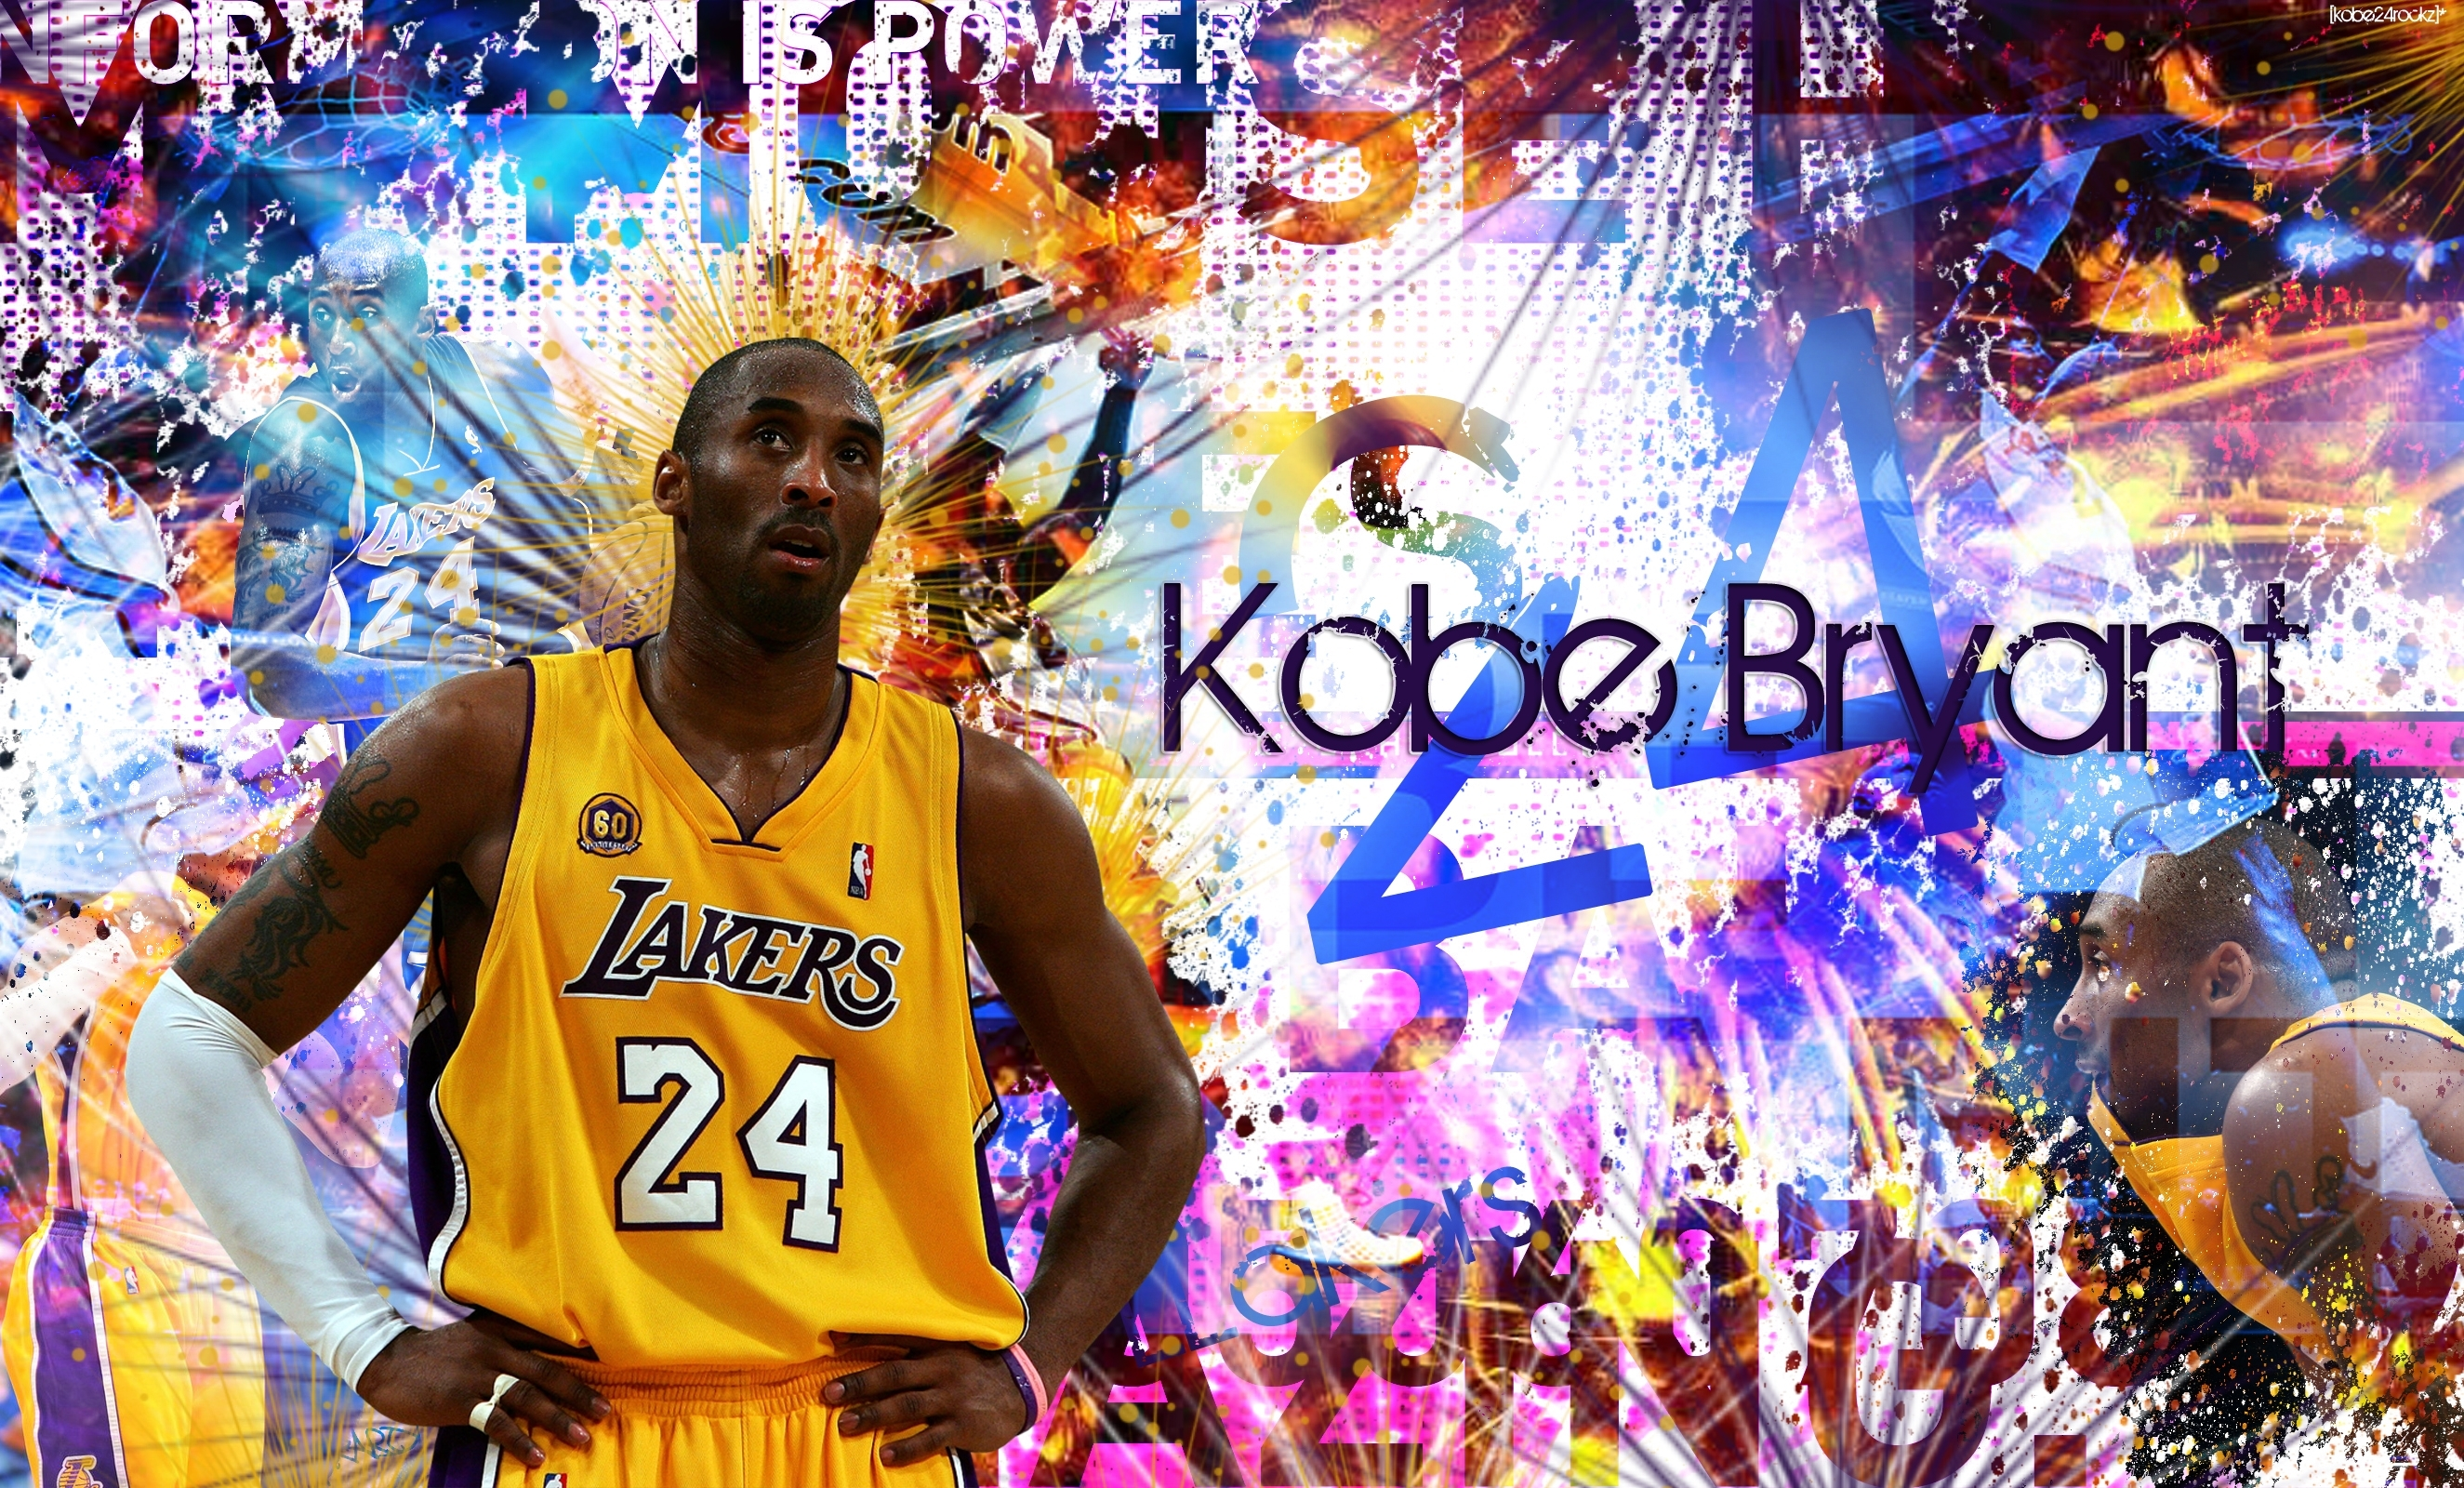 kobe bryant wallpaper picture wallpaper | wallpaperlepi